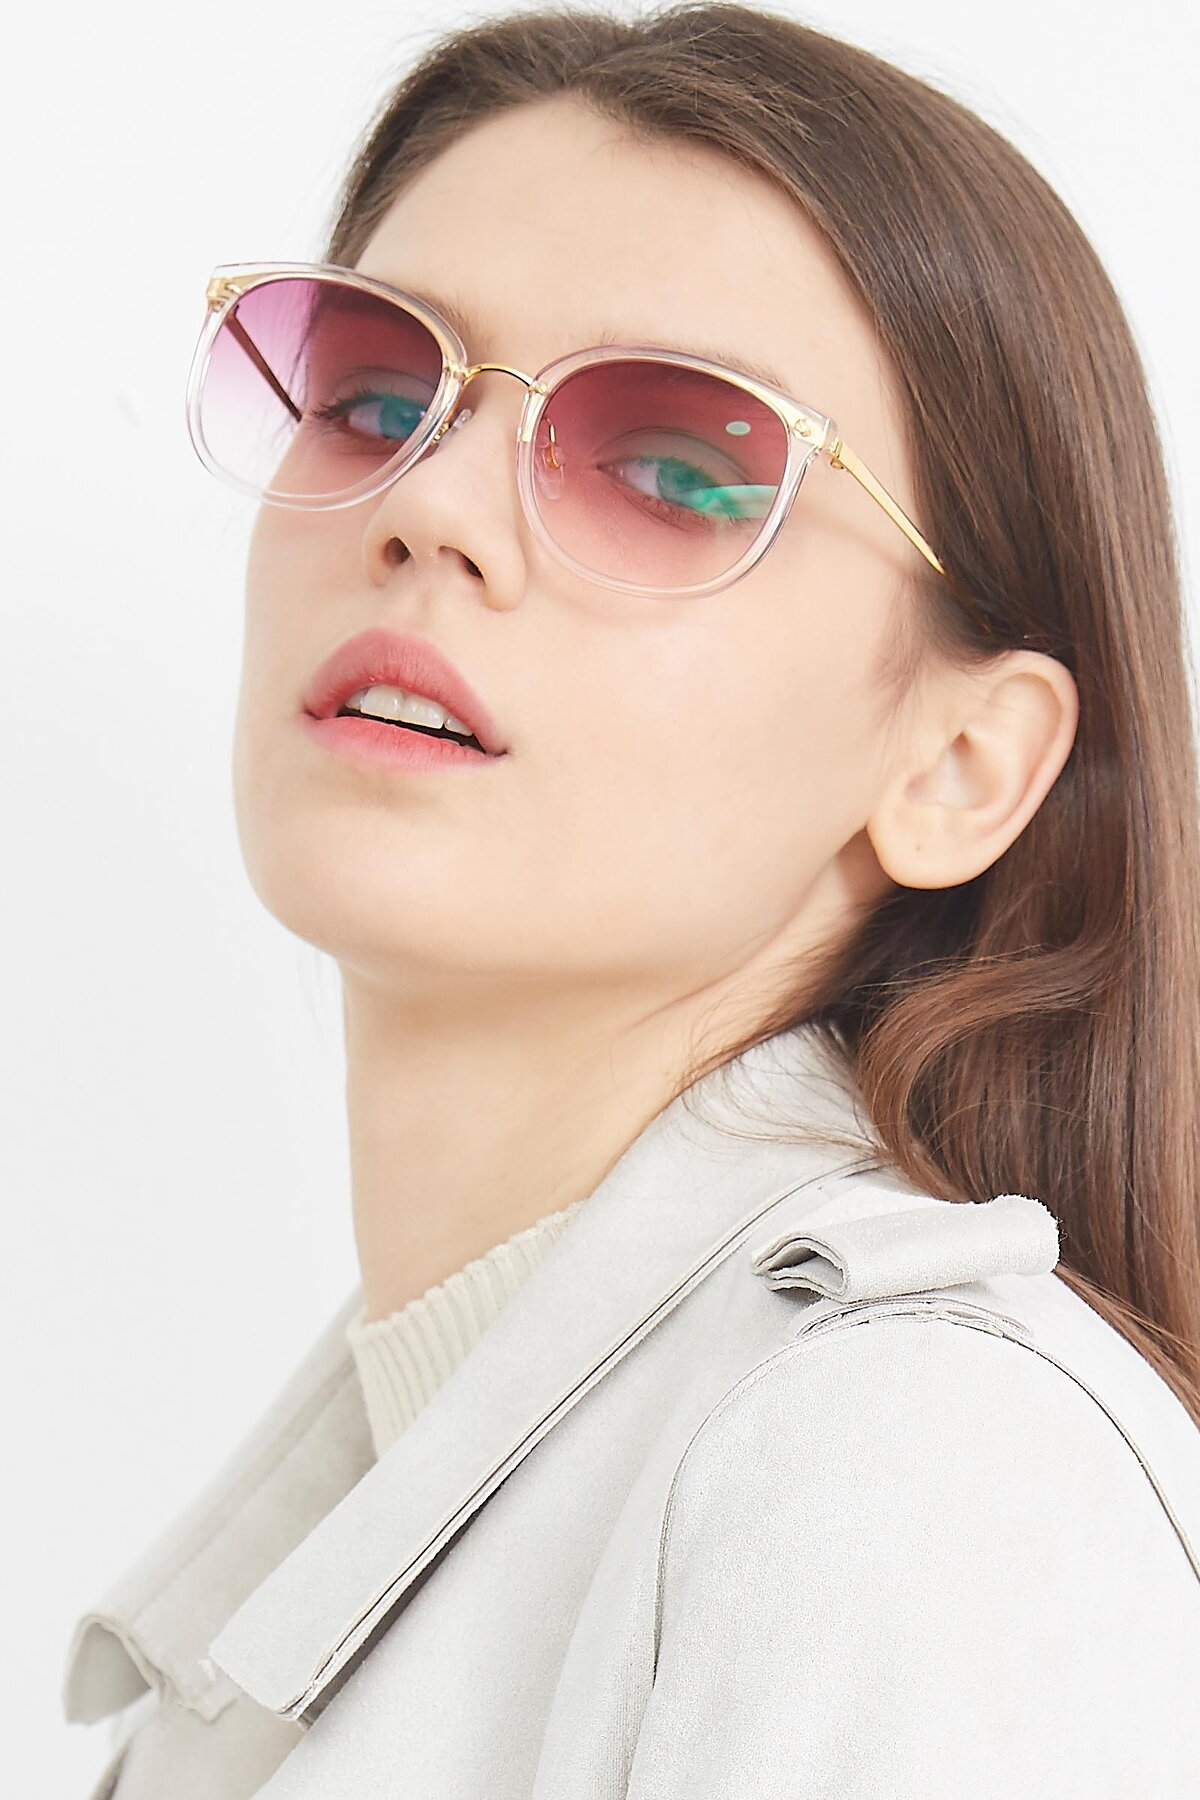 Women's lifestyle photography (portrait-2) of Timeless in Transparent Pink with Purple Gradient Lenses